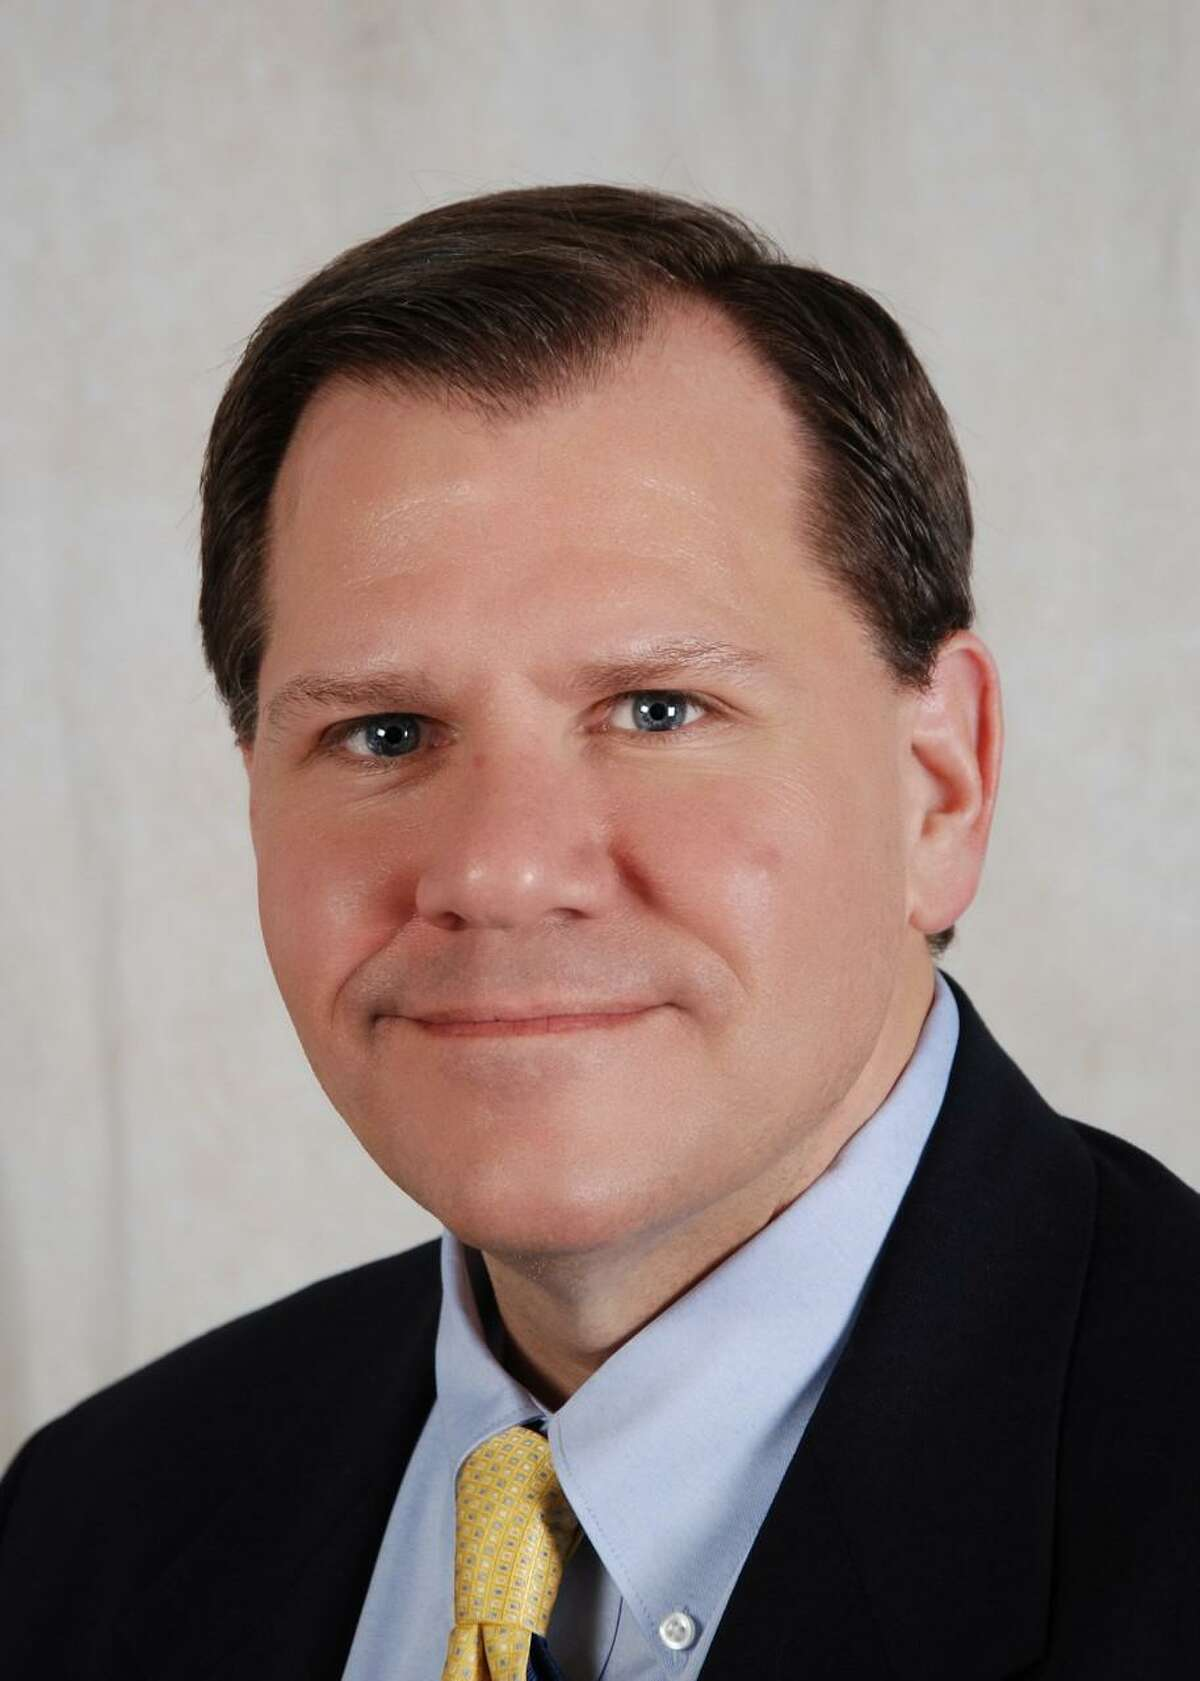 Carl Casper, executive vice president and chief operating officer of North Haven-based Connex Credit Union.